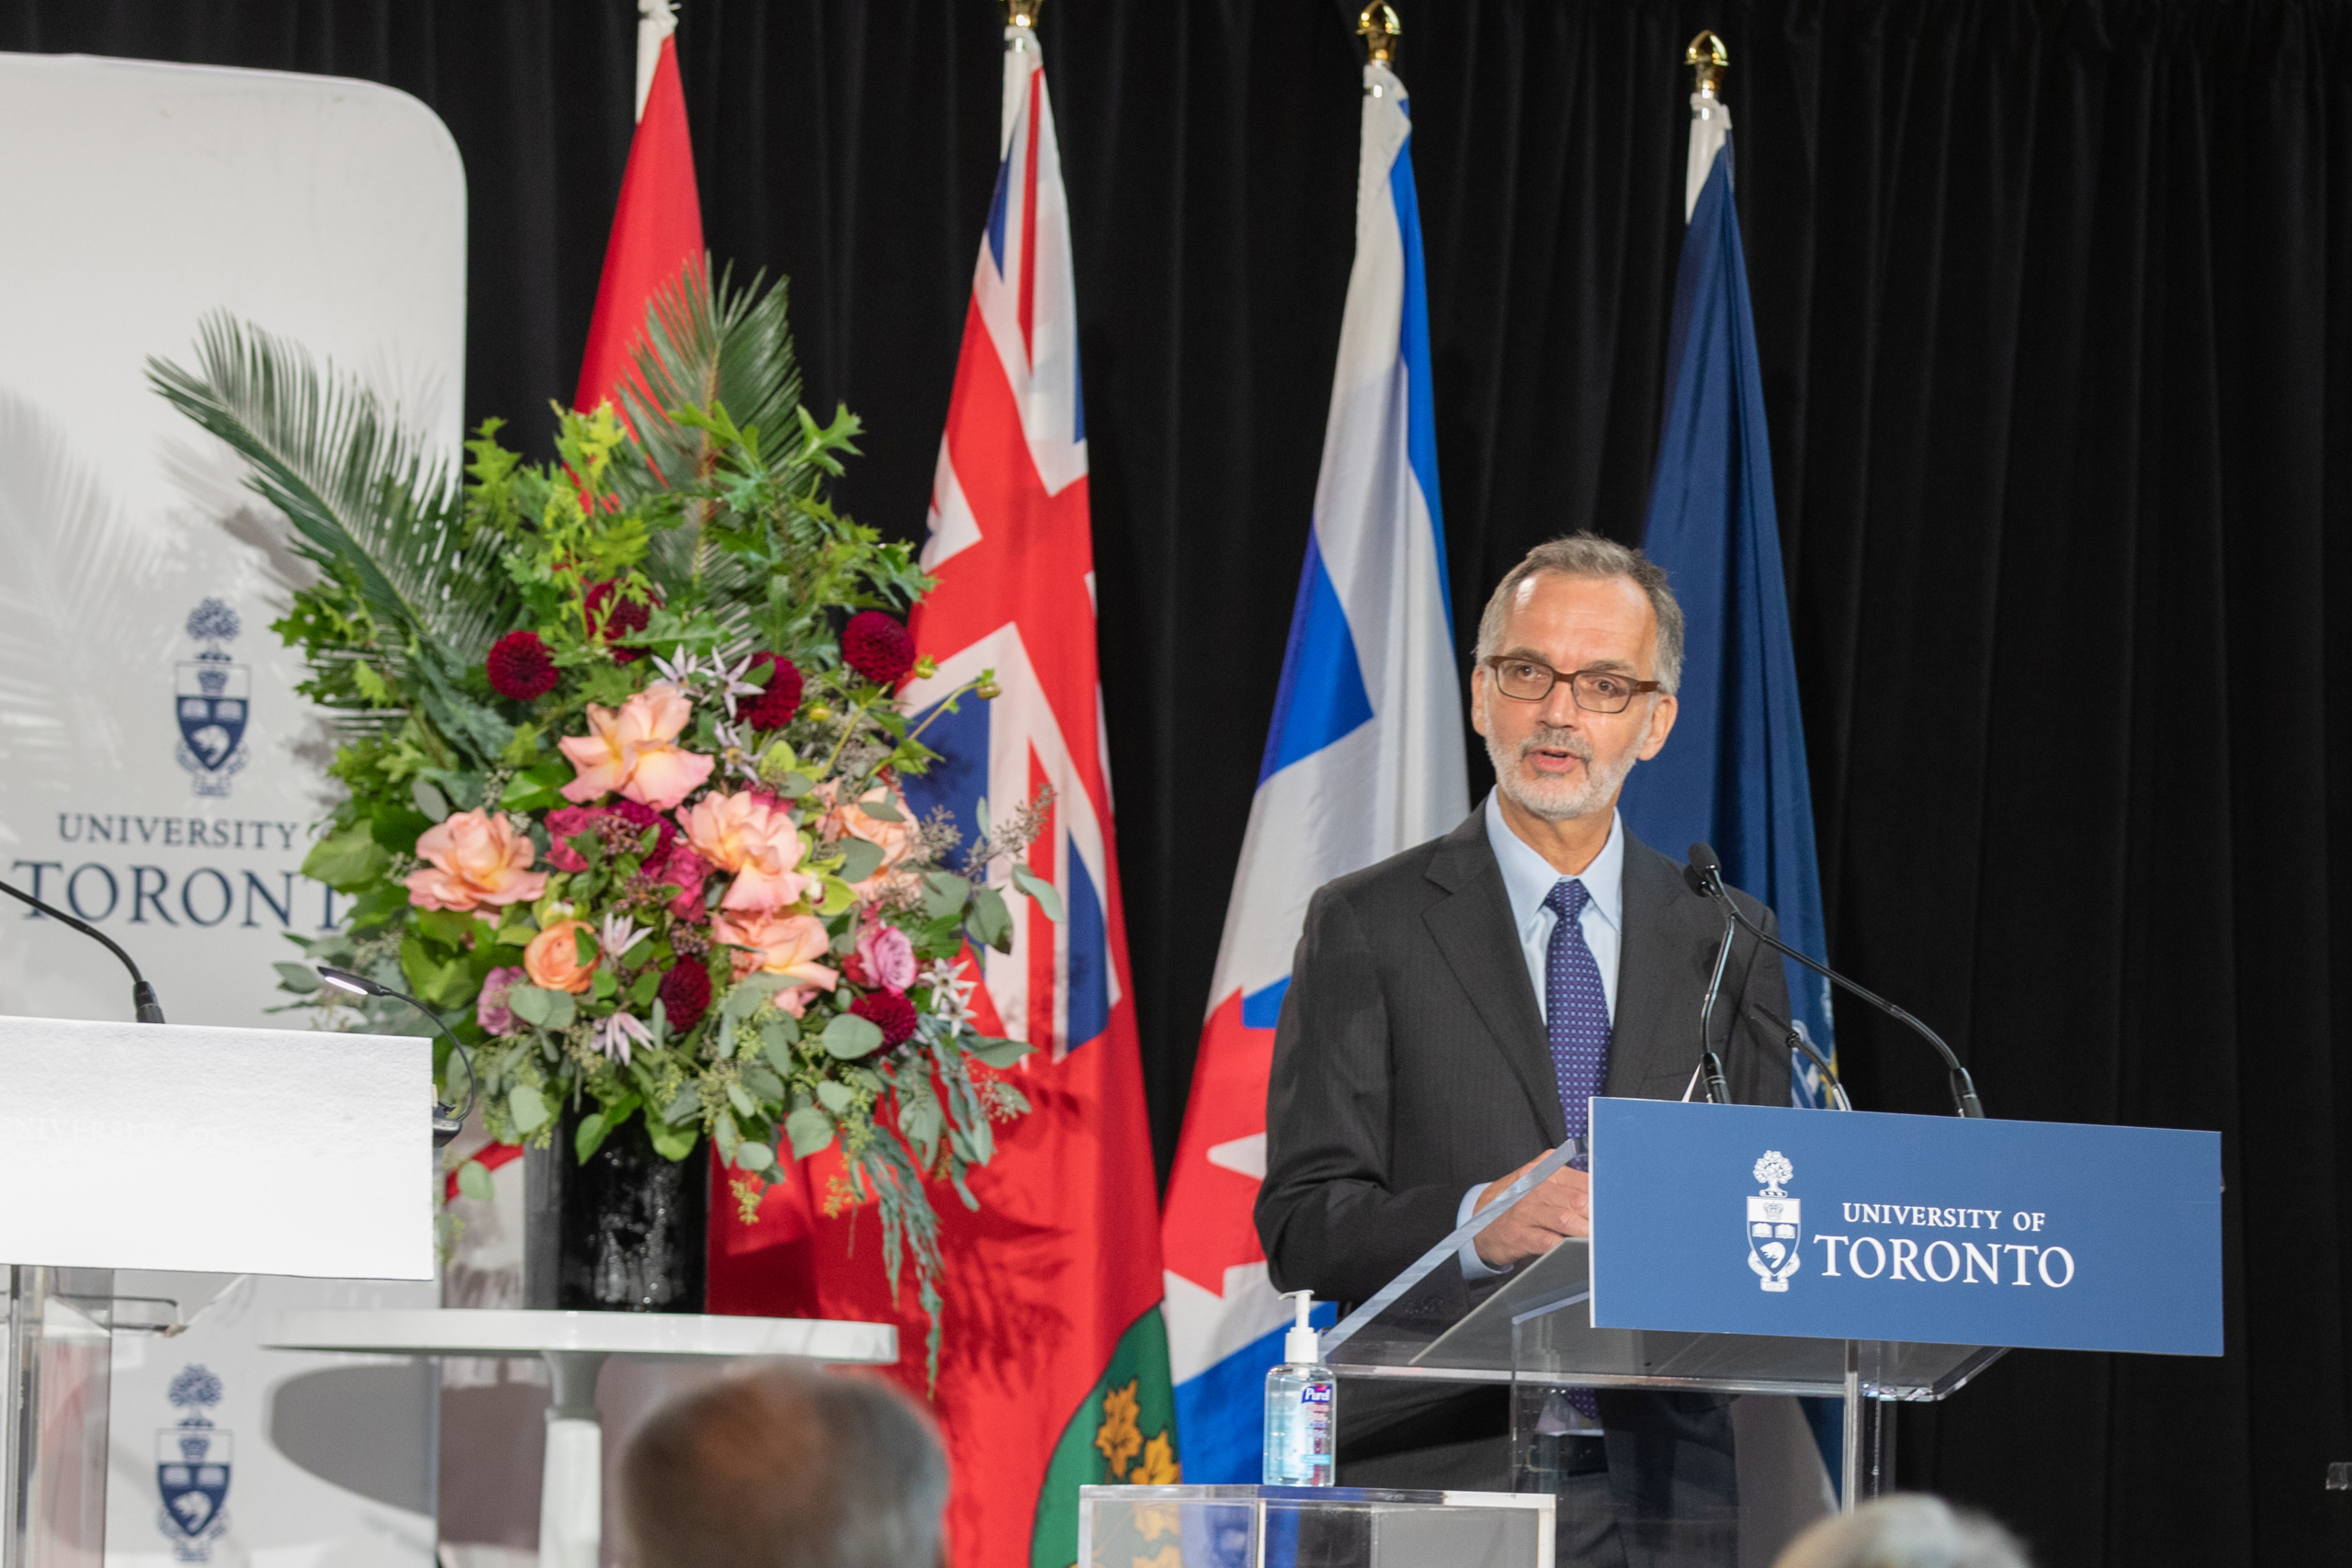 Dean of the Temerty Faculty of Medicine, Trevor Young, standing and speaking at the podium during the Temerty gift announcement event.